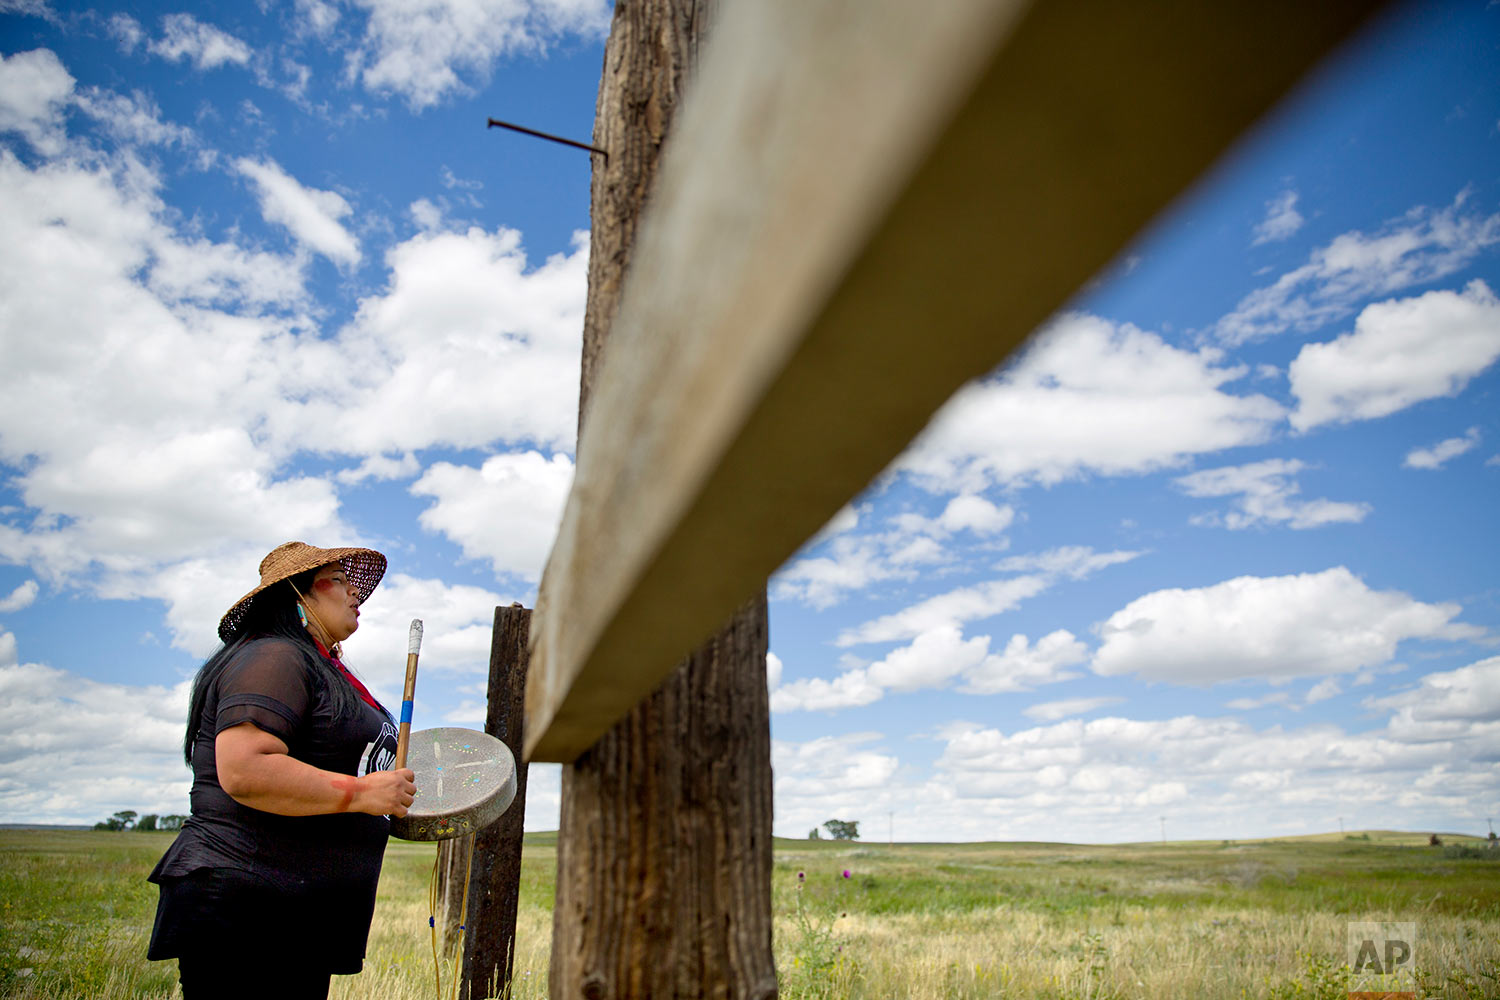 Roxanne White, whose aunt was murdered in 1996, sings and drums a women's warrior and honor song created for missing and murdered indigenous women, before joining a search in Valier, Mont., for Ashley HeavyRunner Loring,July 11, 2018. (AP Photo/David Goldman)